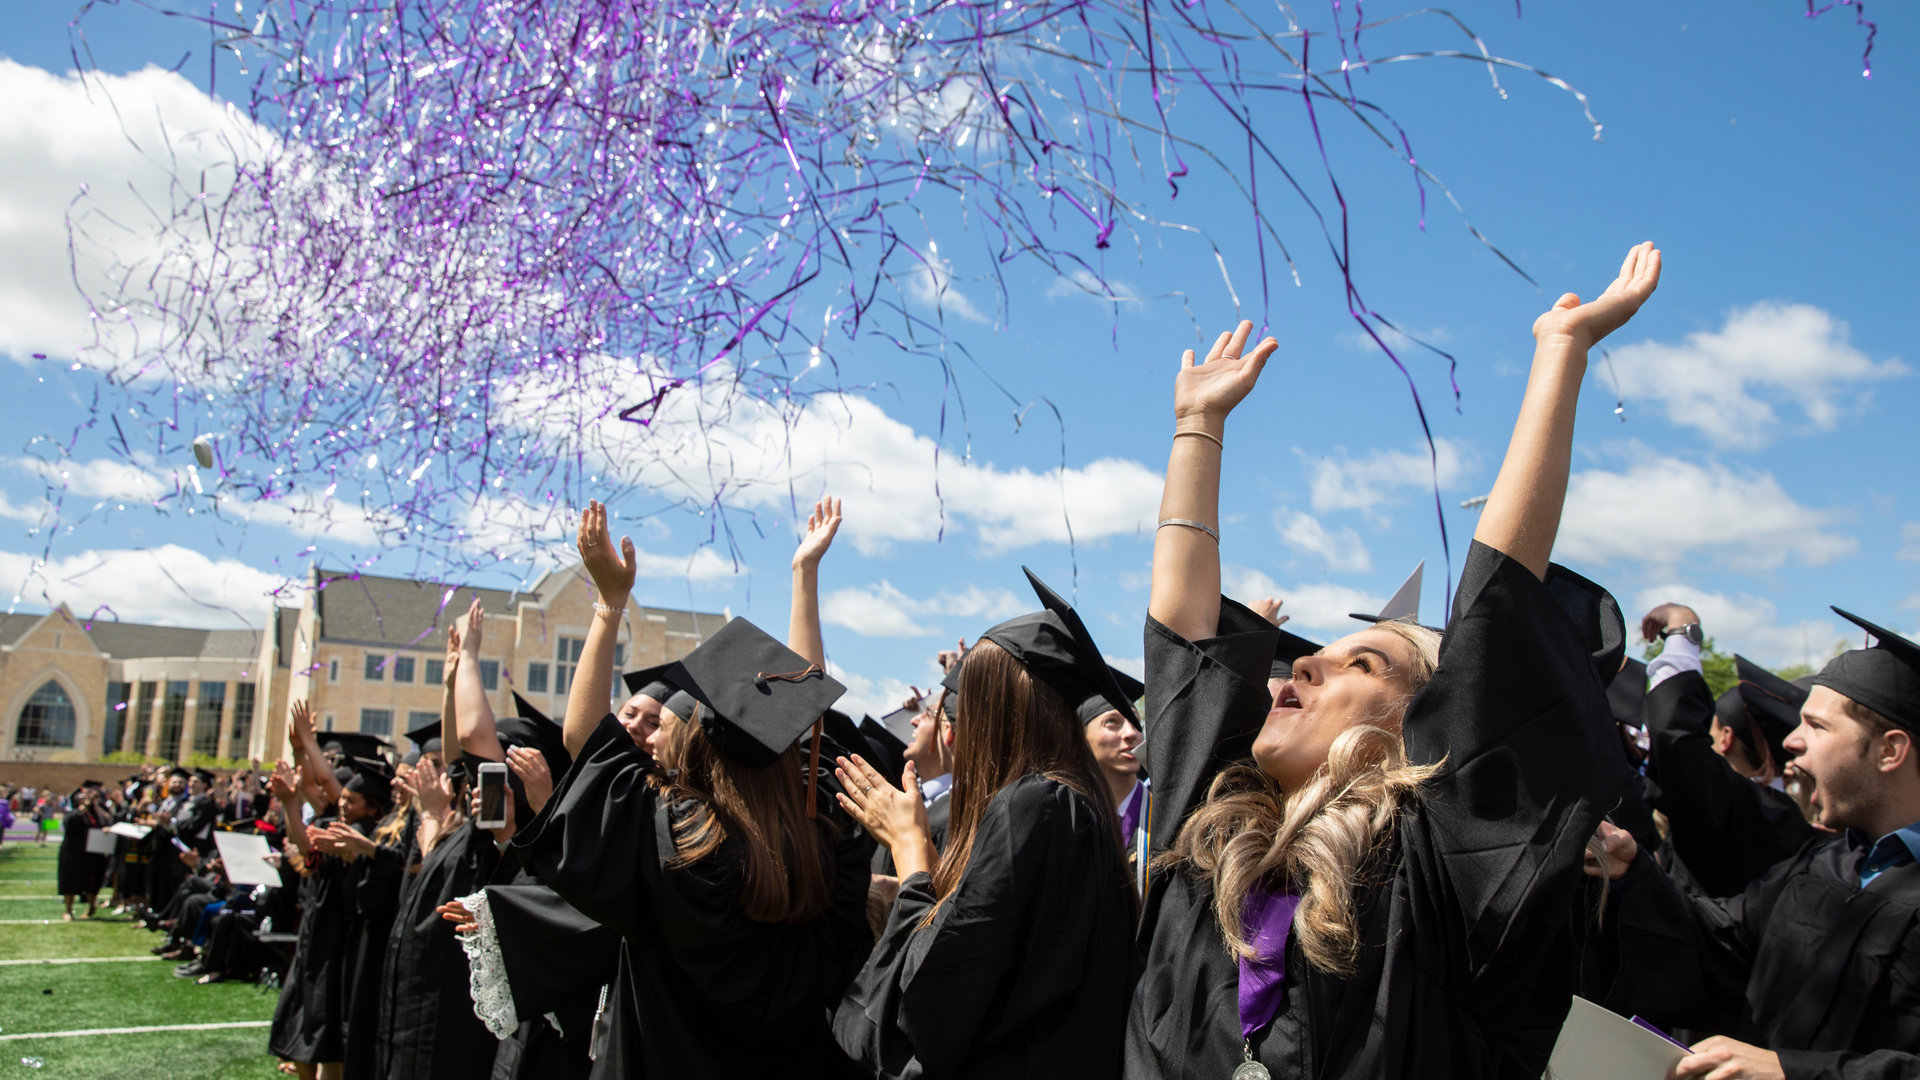 Students celebrate as confetti falls during Commencement